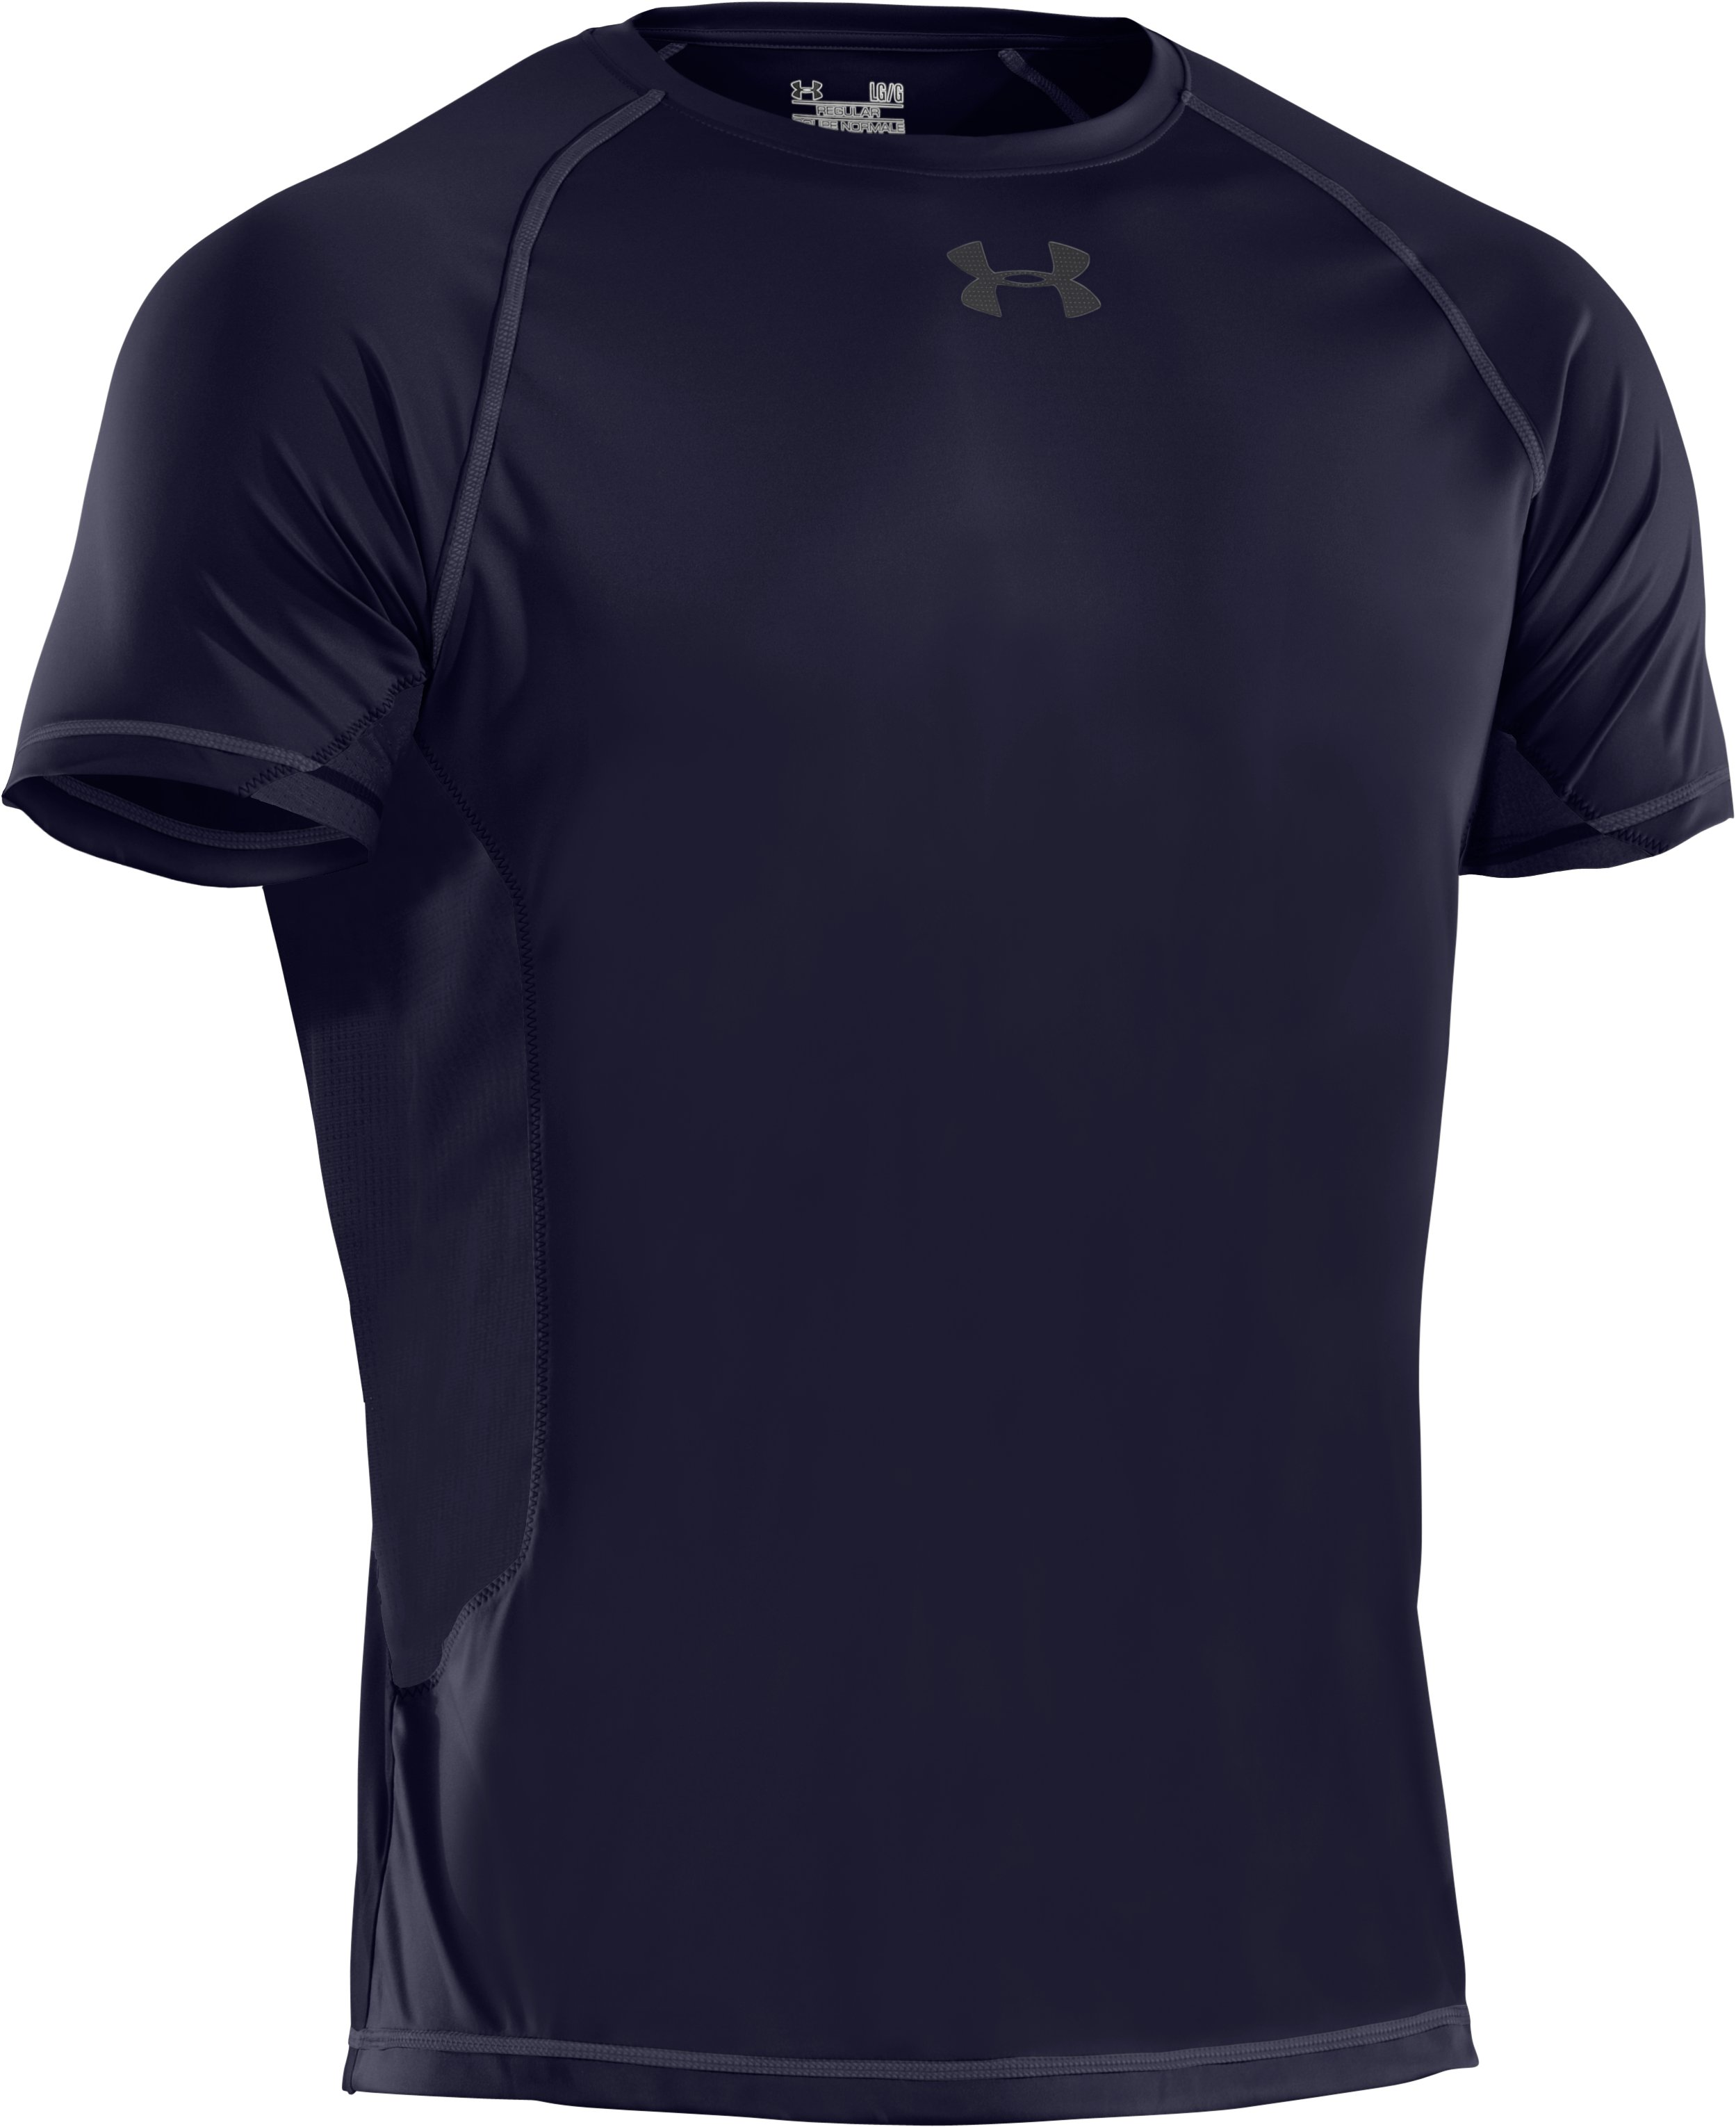 Men's HeatGear® Flyweight Short Sleeve, Midnight Navy, undefined